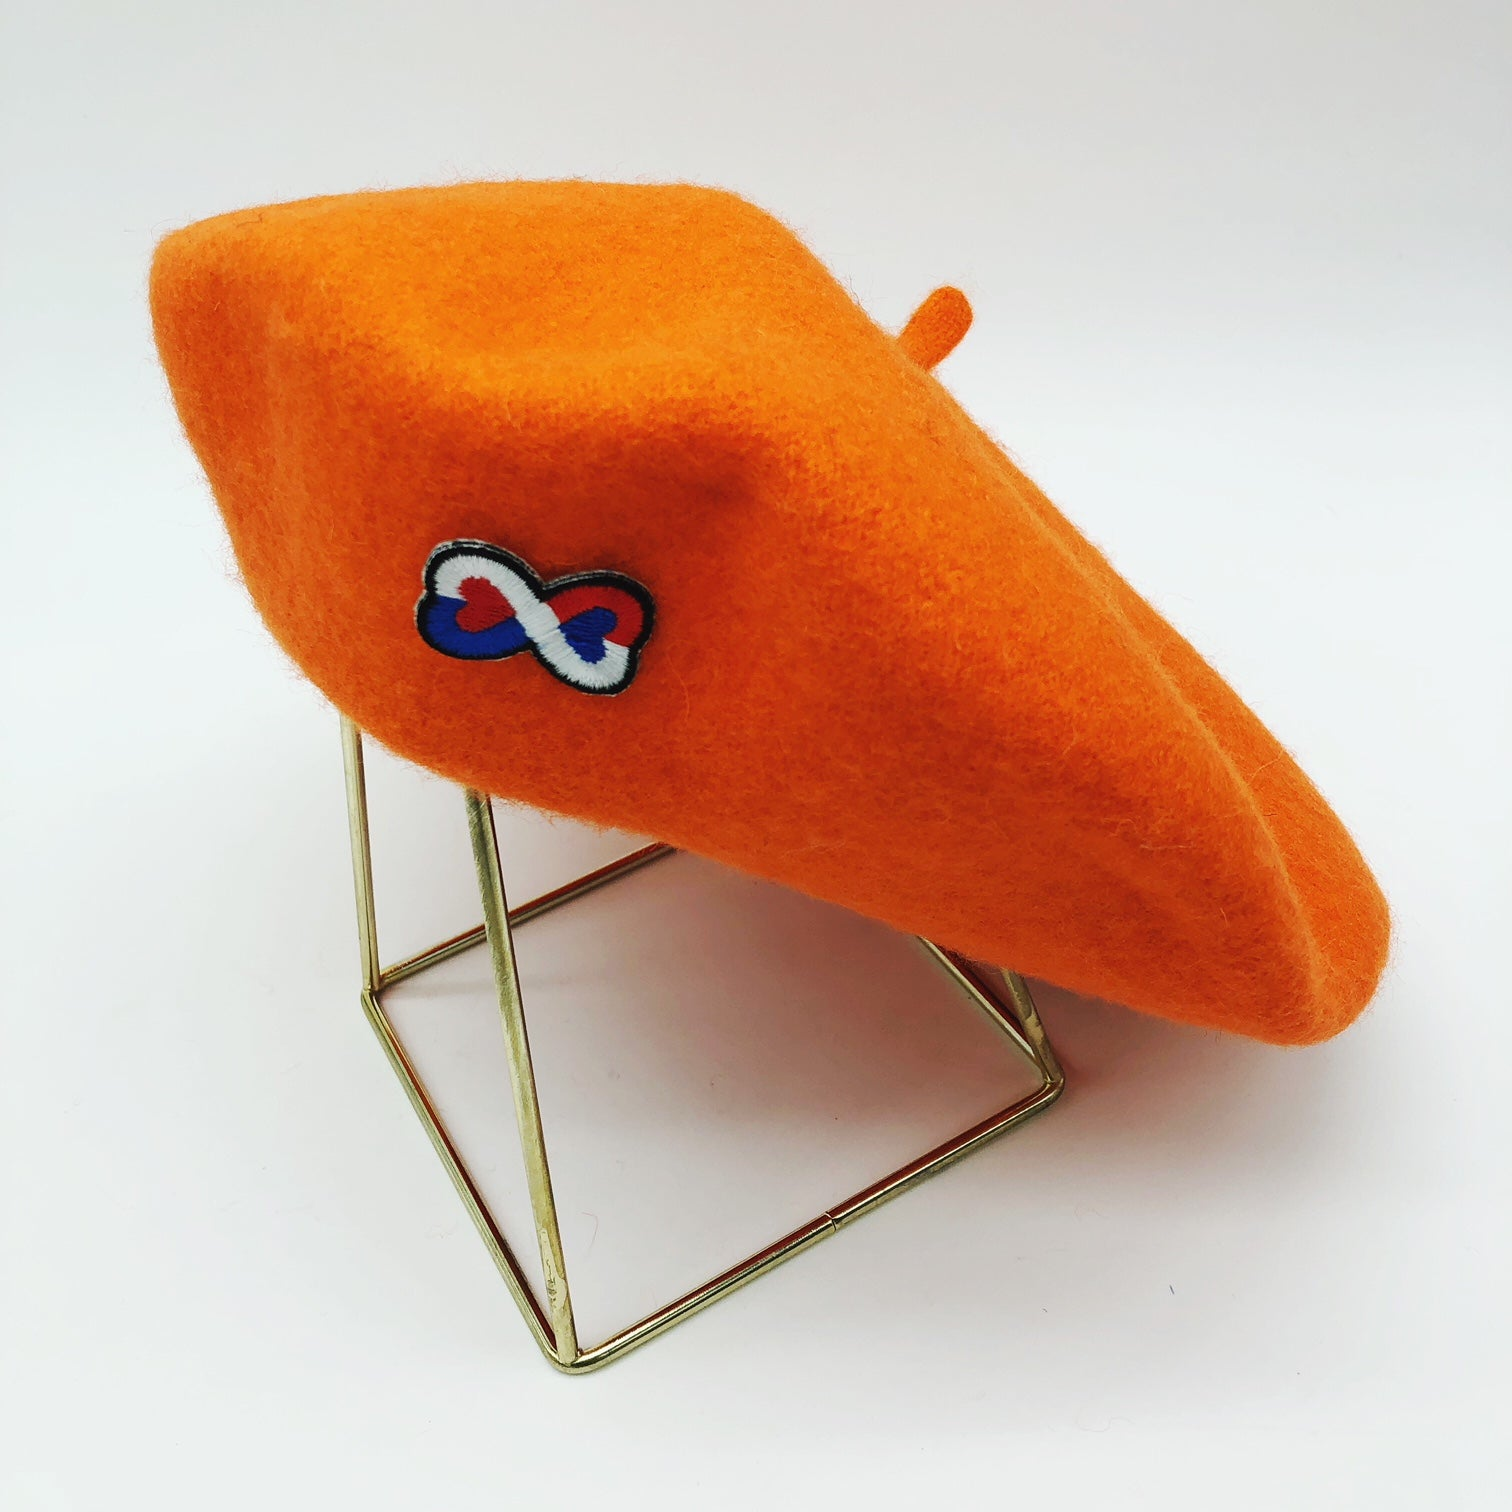 béret-orange-coeur-tricolore-french-frenchie-laine-gili